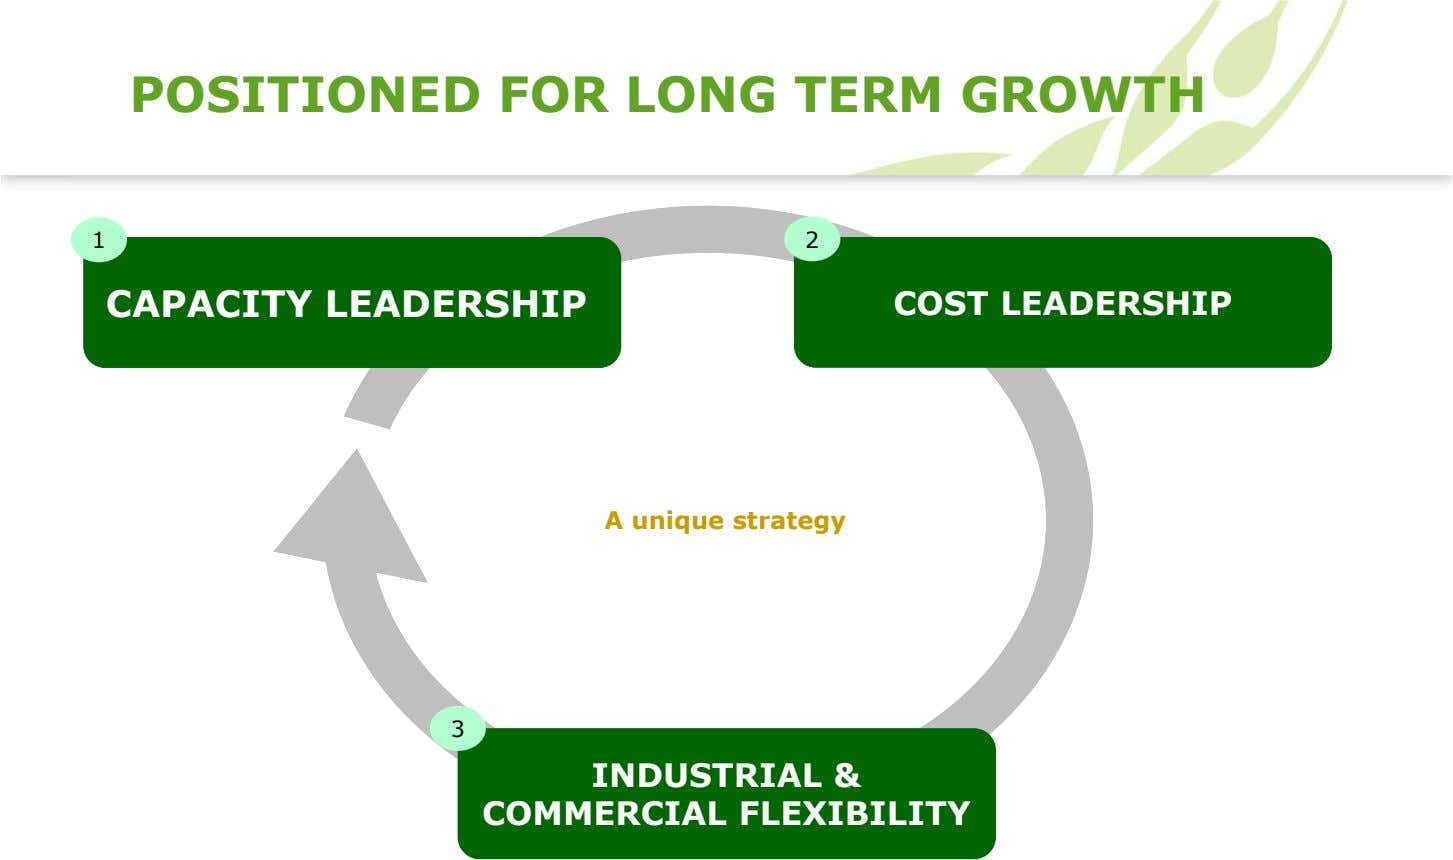 POSITIONED FOR LONG TERM GROWTH 1 2 CAPACITYCAPACITY LEADERSHIPLEADERSHIP COSTCOST LEADERSHIPLEADERSHIP A unique